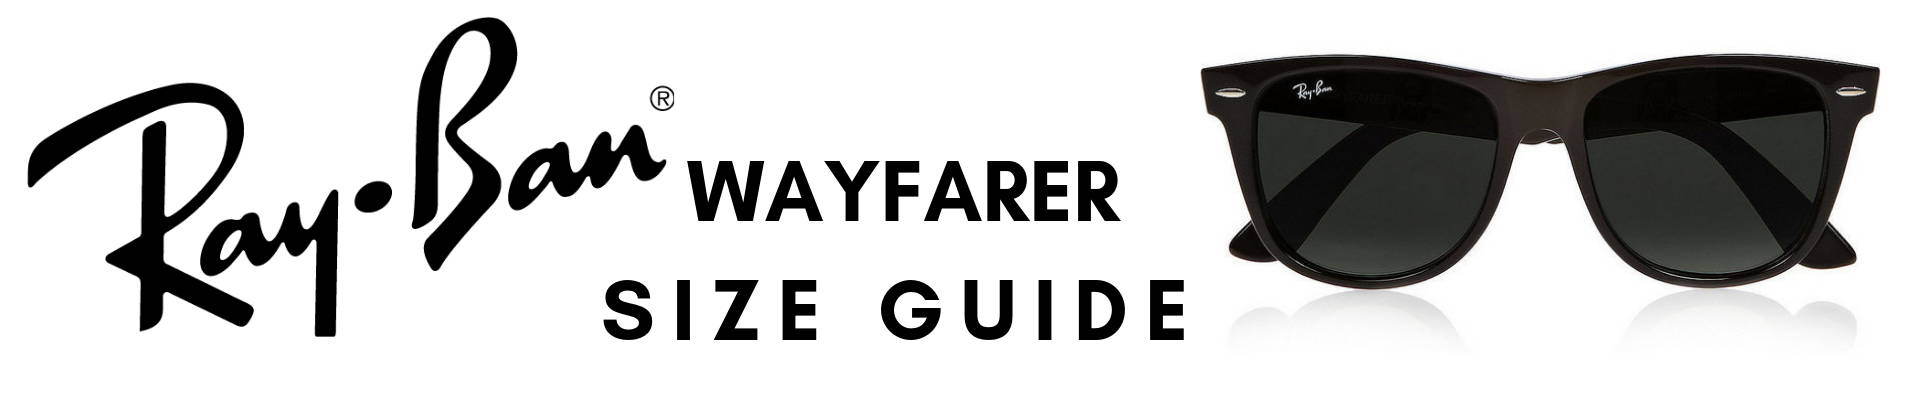 d630a5c572 THE DEFINITIVE GUIDE TO BUYING RAY-BAN WAYFARERS SUNGLASSES ...